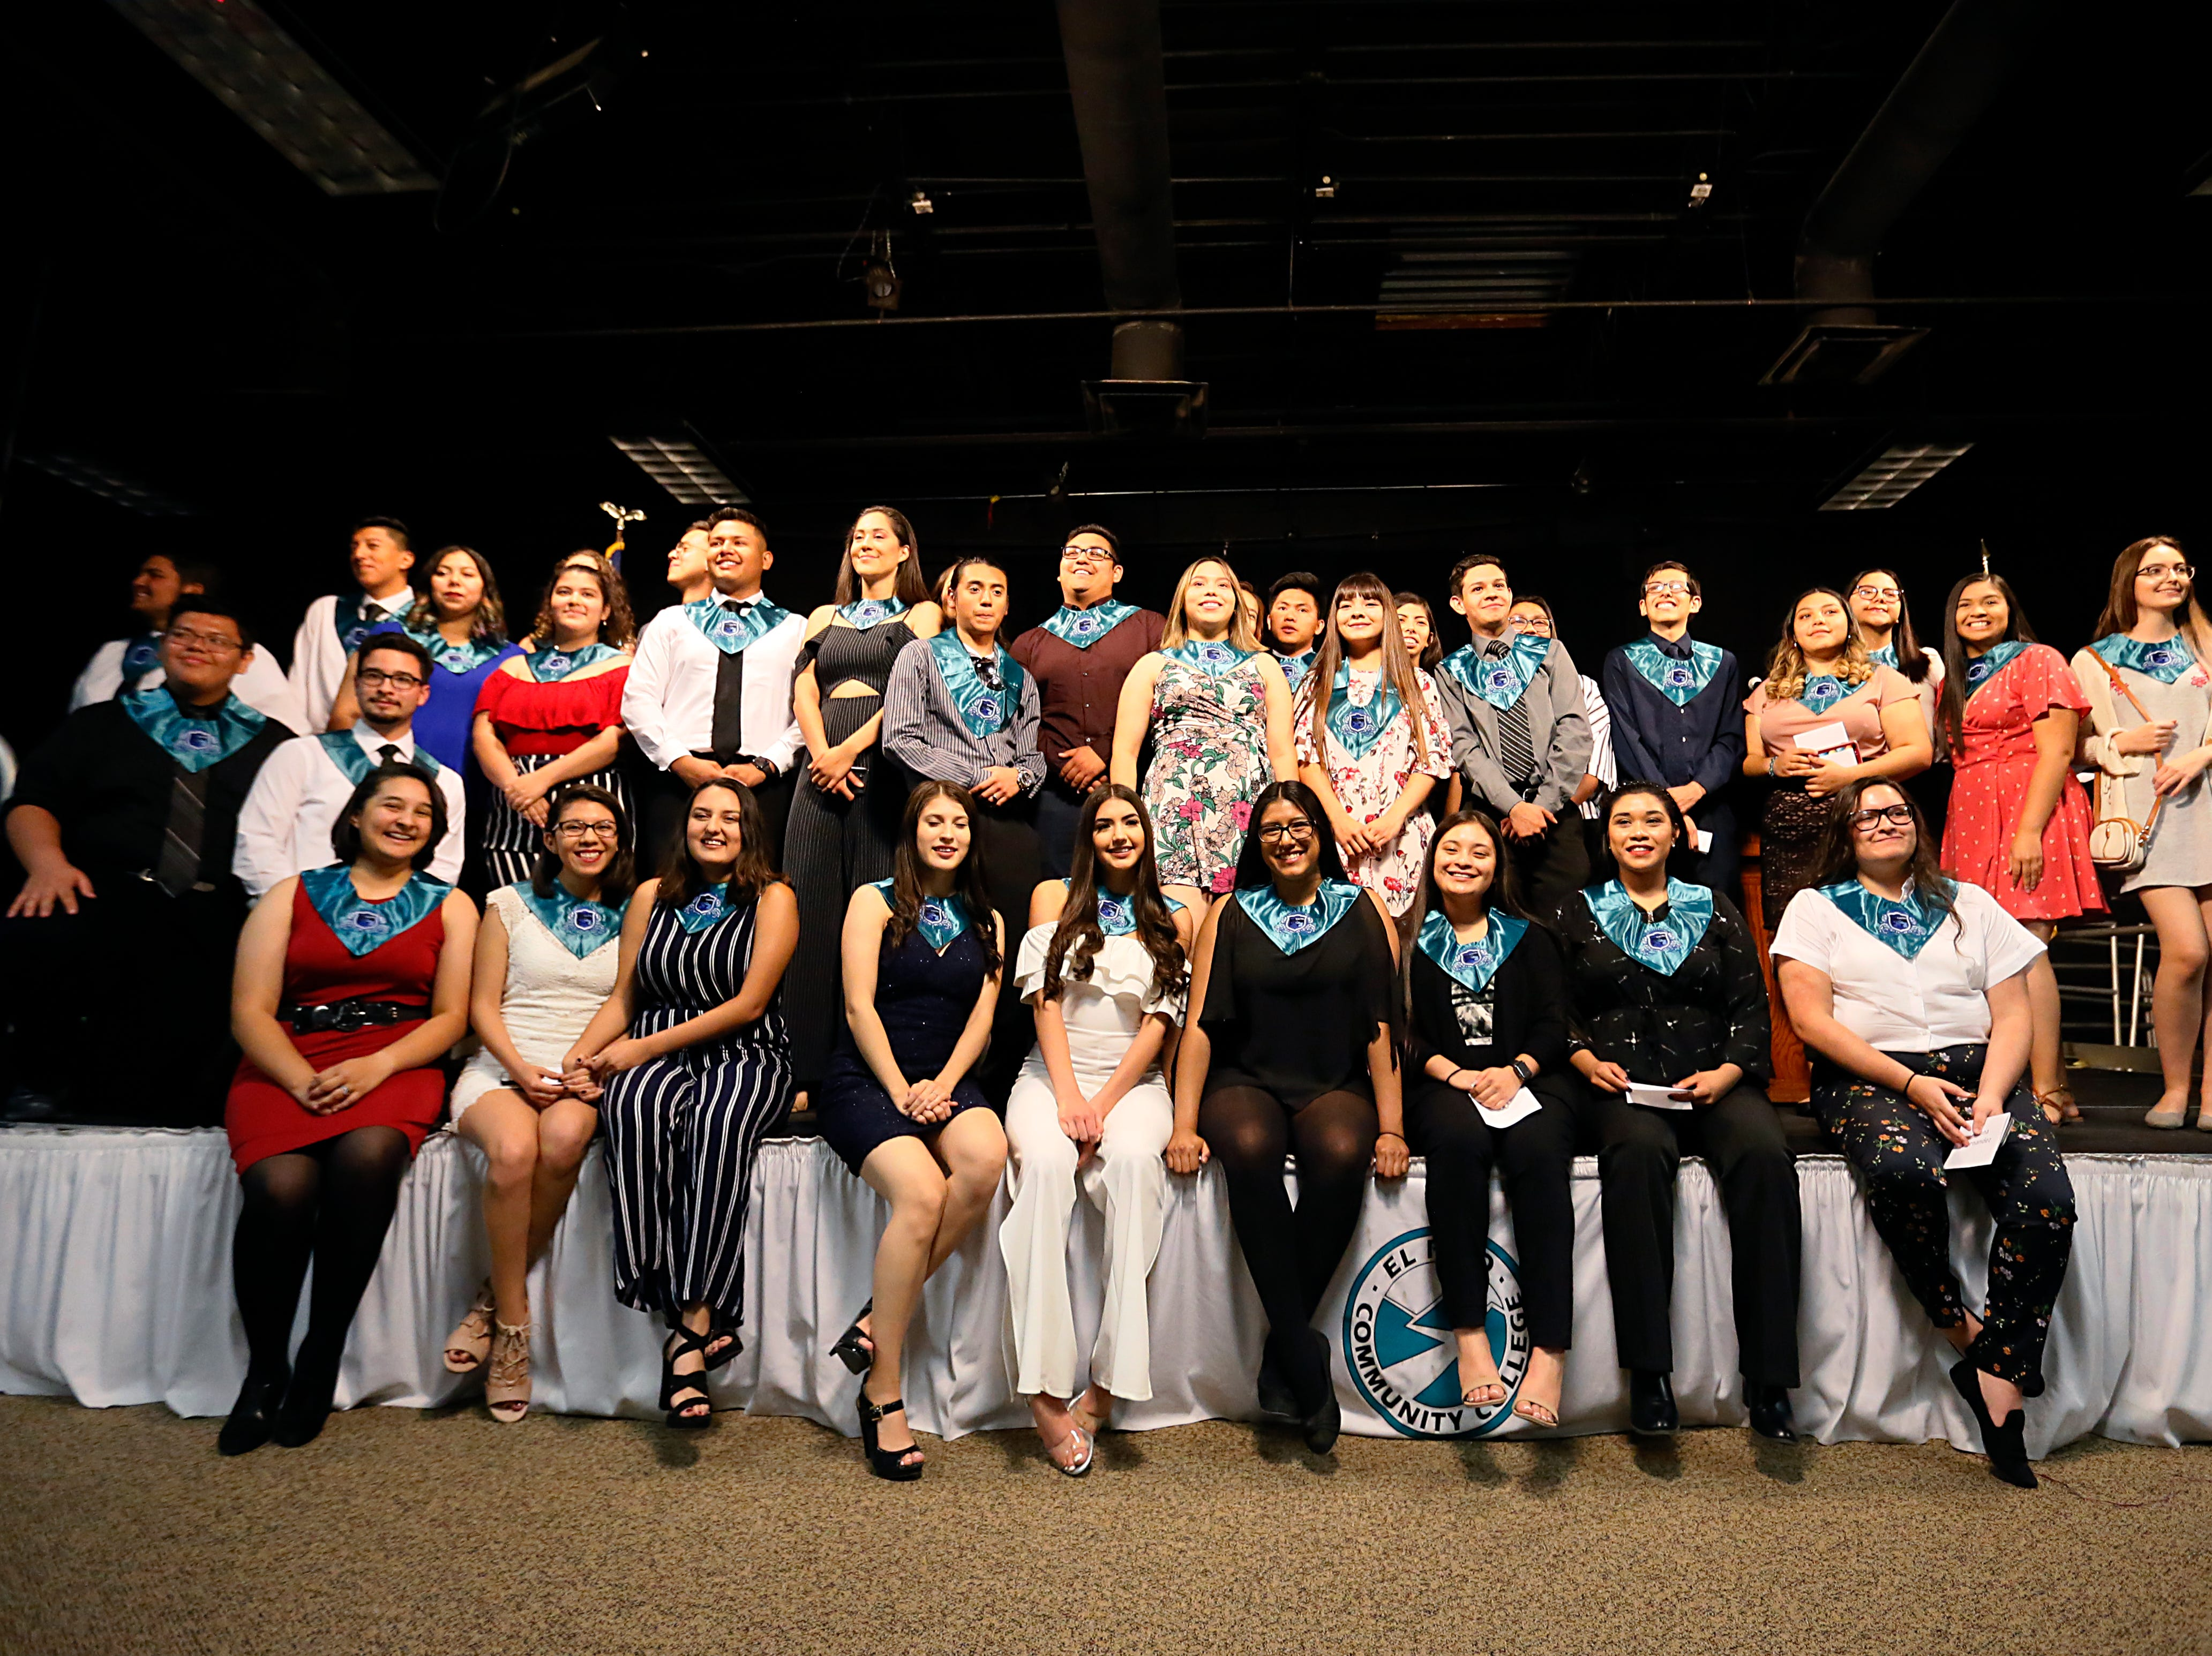 Mission Early College High School students celebrate earning their associate degree Tuesday, May 7, at stoling ceremony at EPCC Administrative Service Center in El Paso.